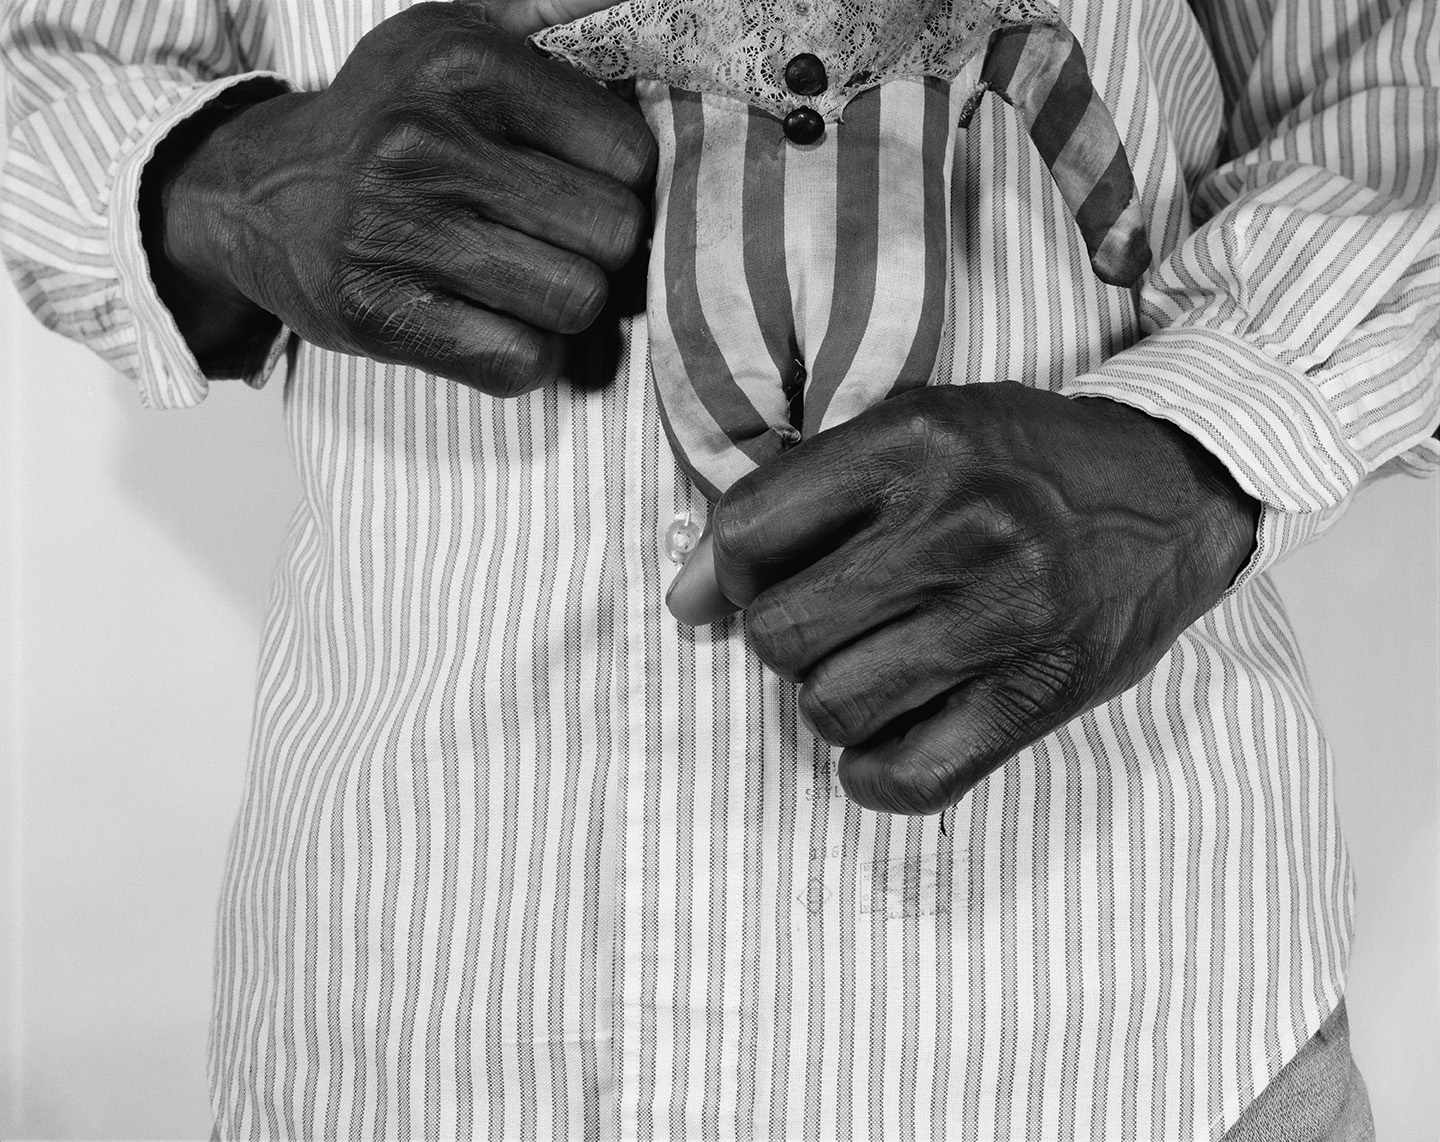 Black Hands with Doll.jpg